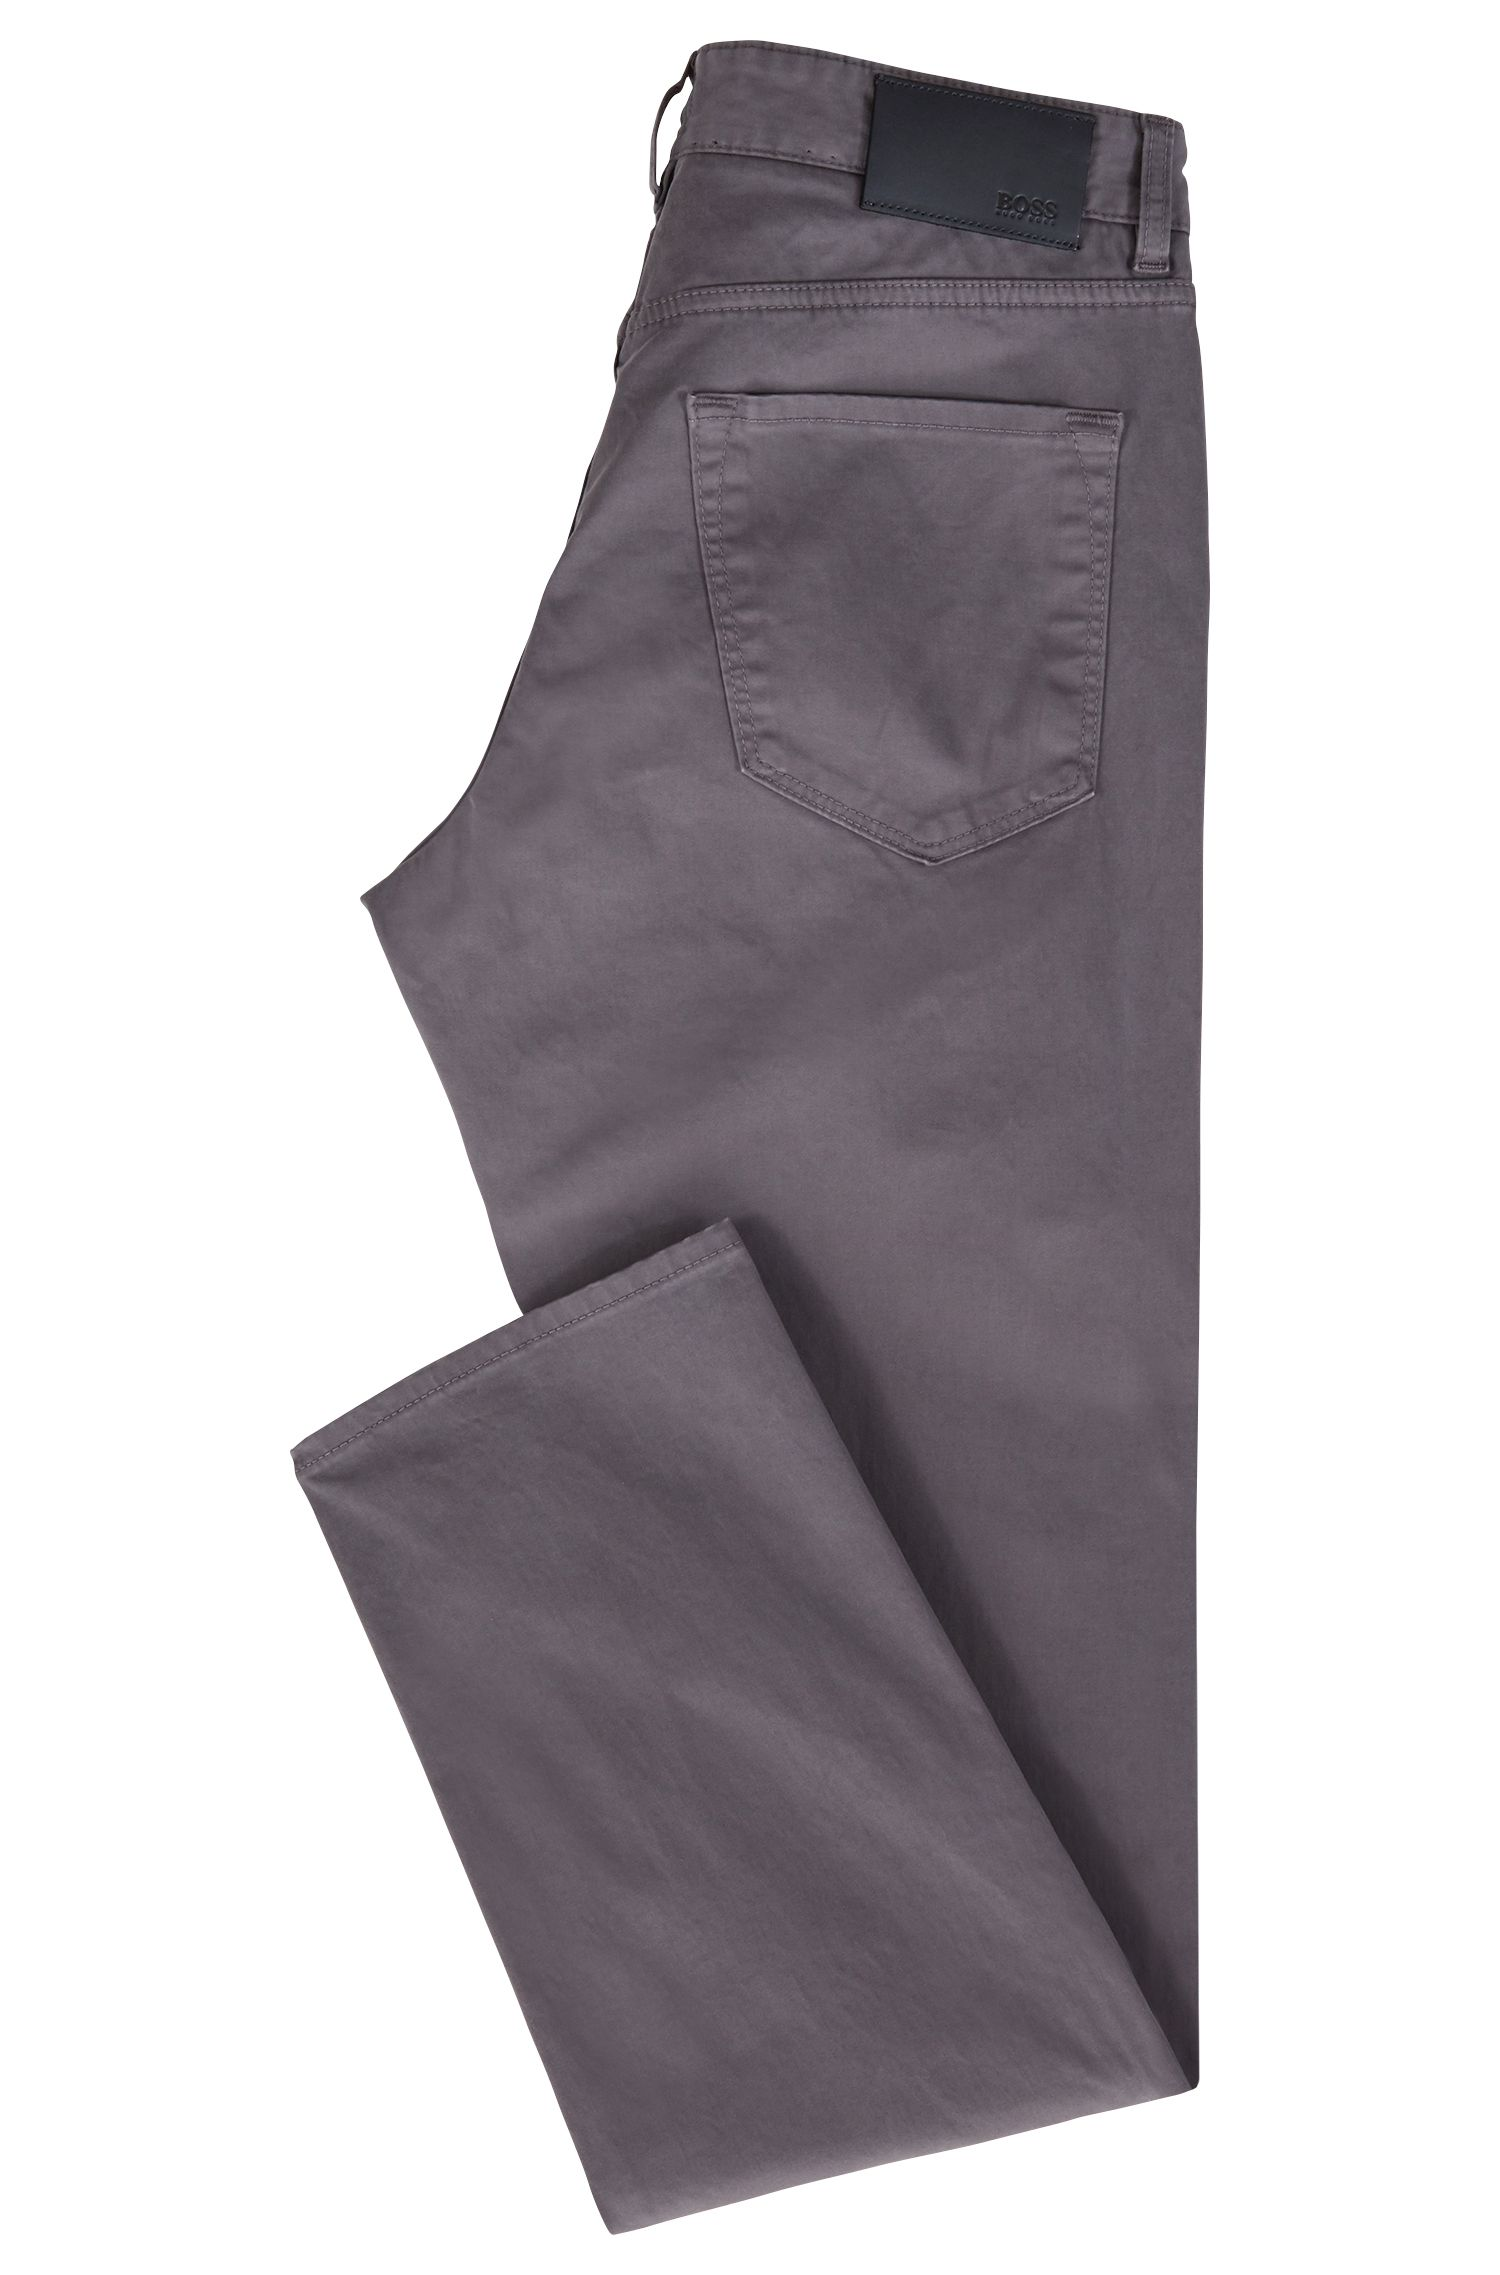 Regular-fit jeans in diamond-brushed satin stretch denim, Grey